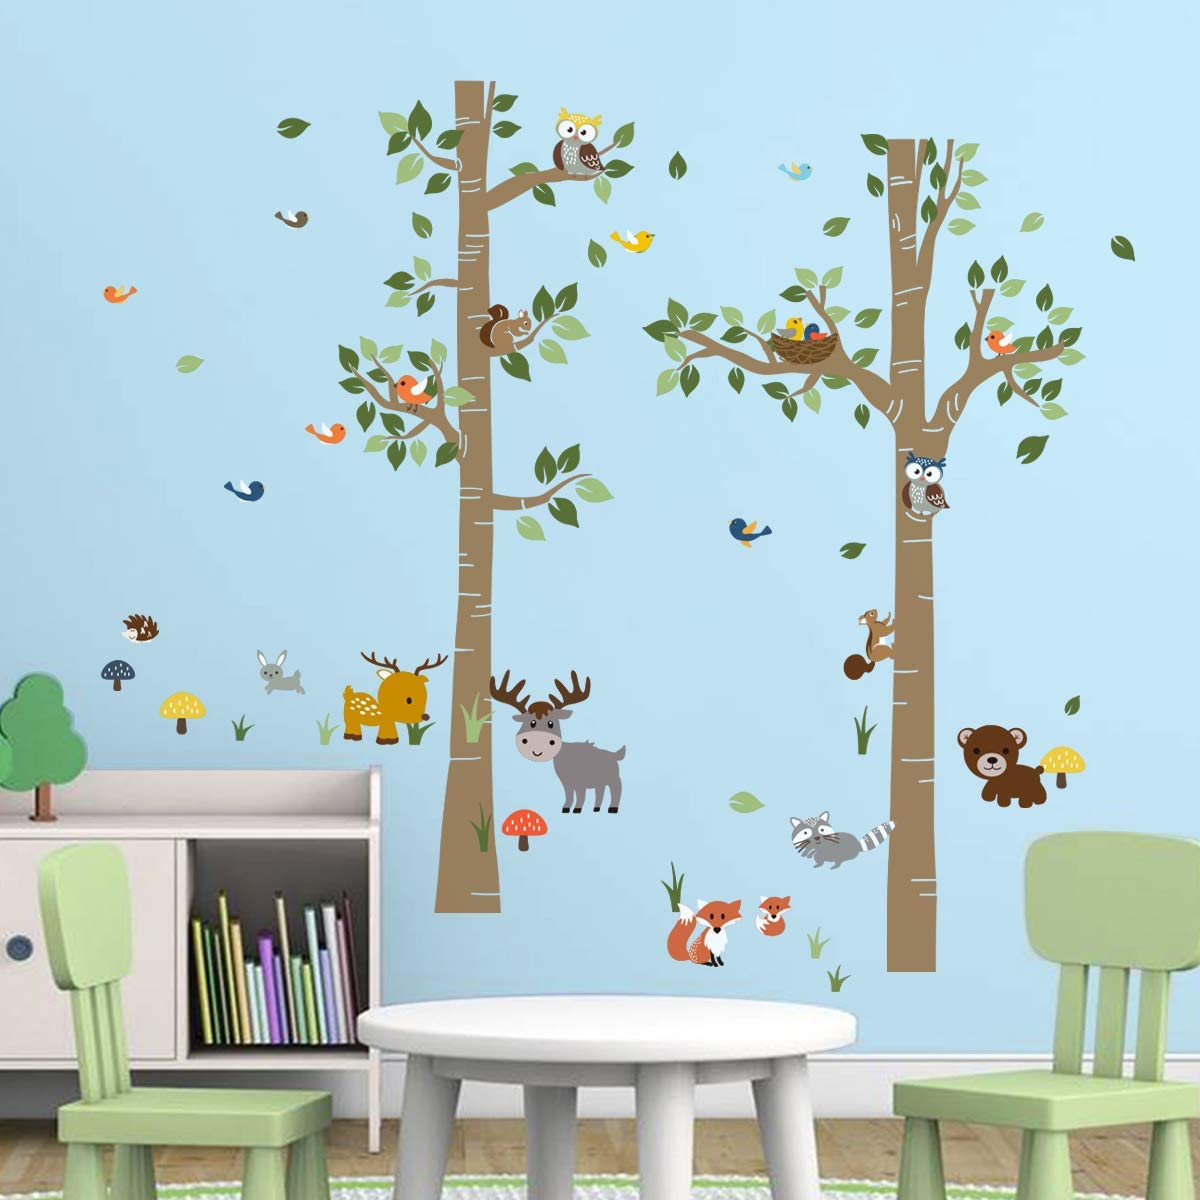 H: 62 Inches decalmile Forest Animals Birch Tree Wall Decals Deer Owl Fox Wall Stickers Baby Nursery Kids Bedroom Playroom Wall Decor